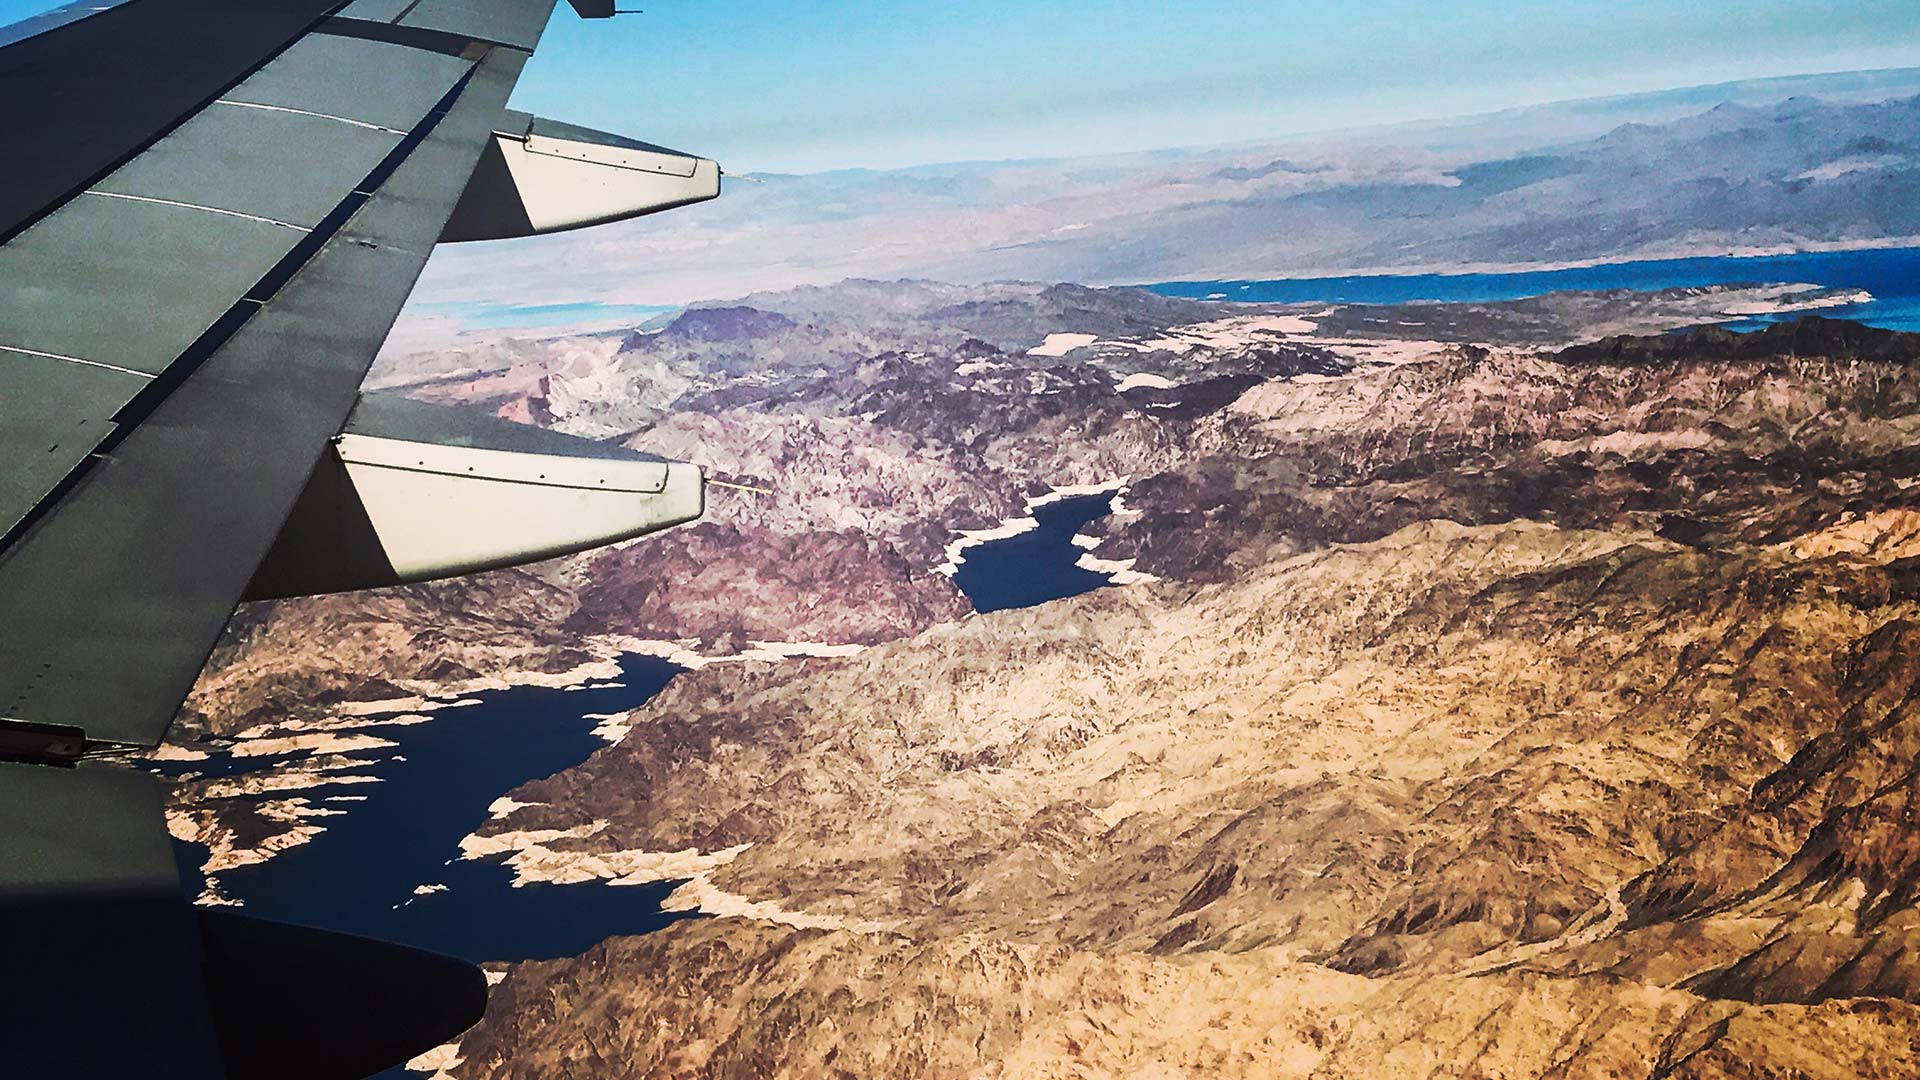 Lake Mead seen from an airplane.